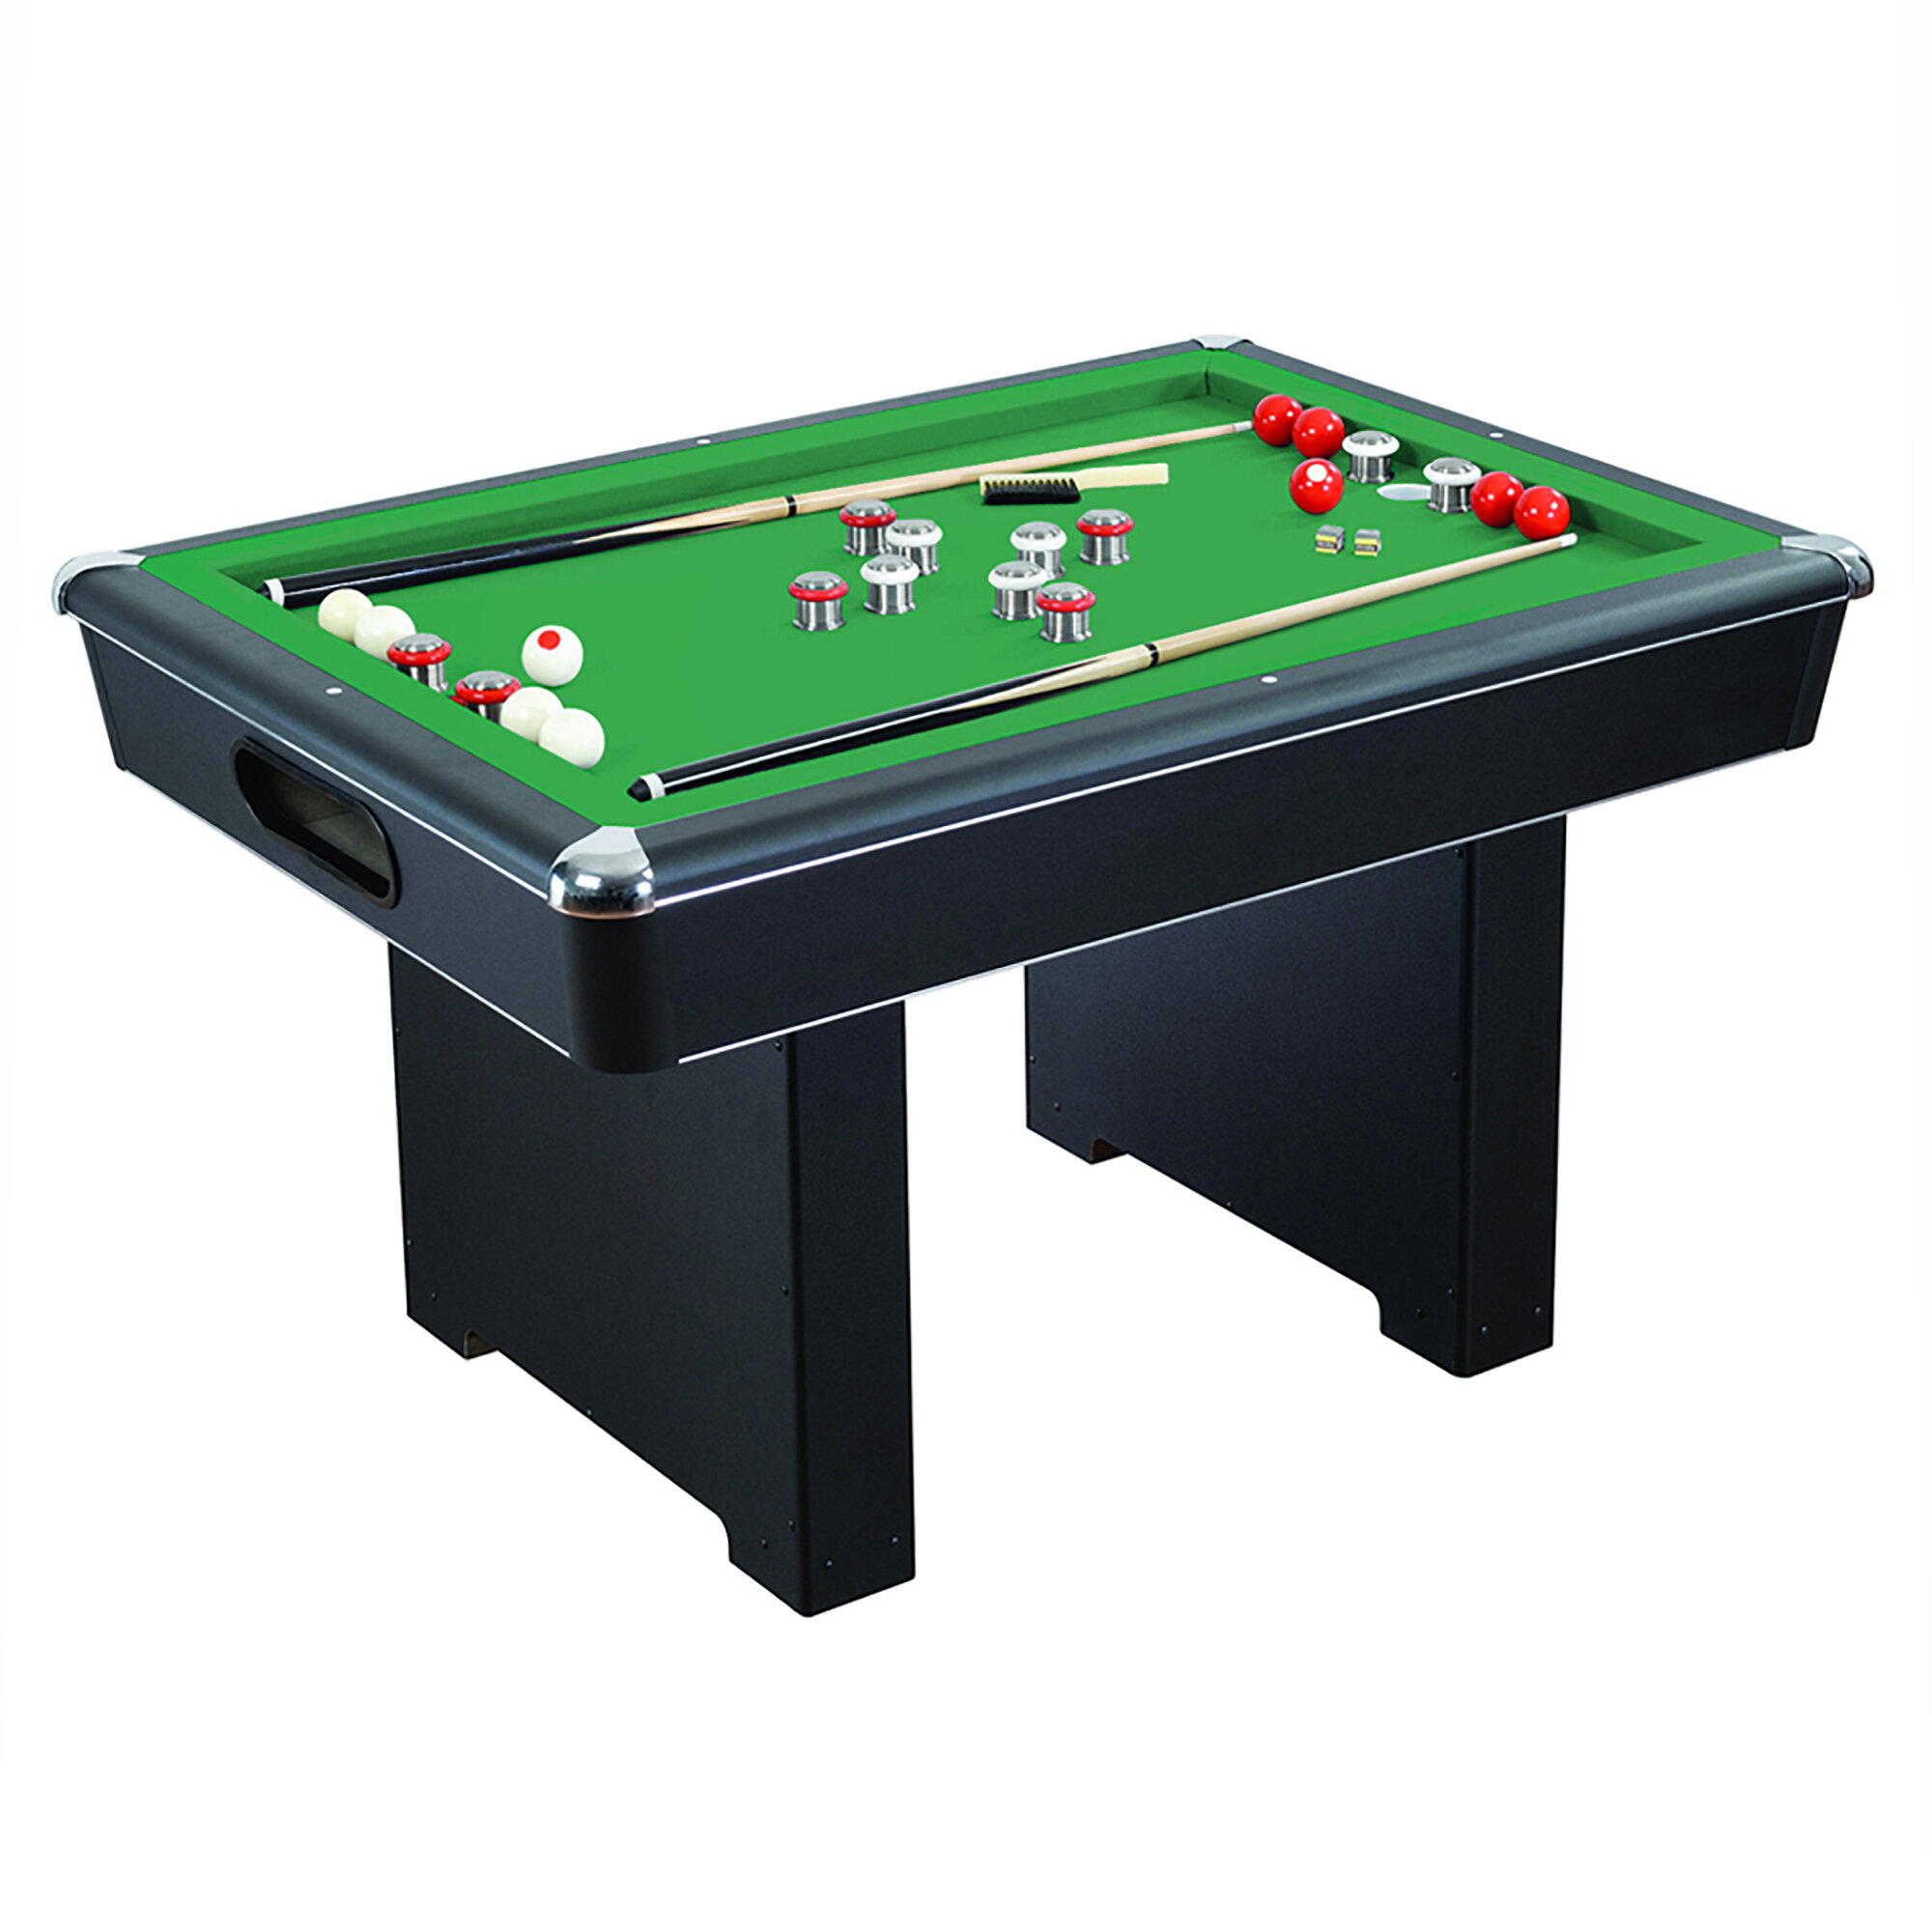 simplistic nana improvement room workshop ideas decor table billiards billiard home special s pool accessories design www